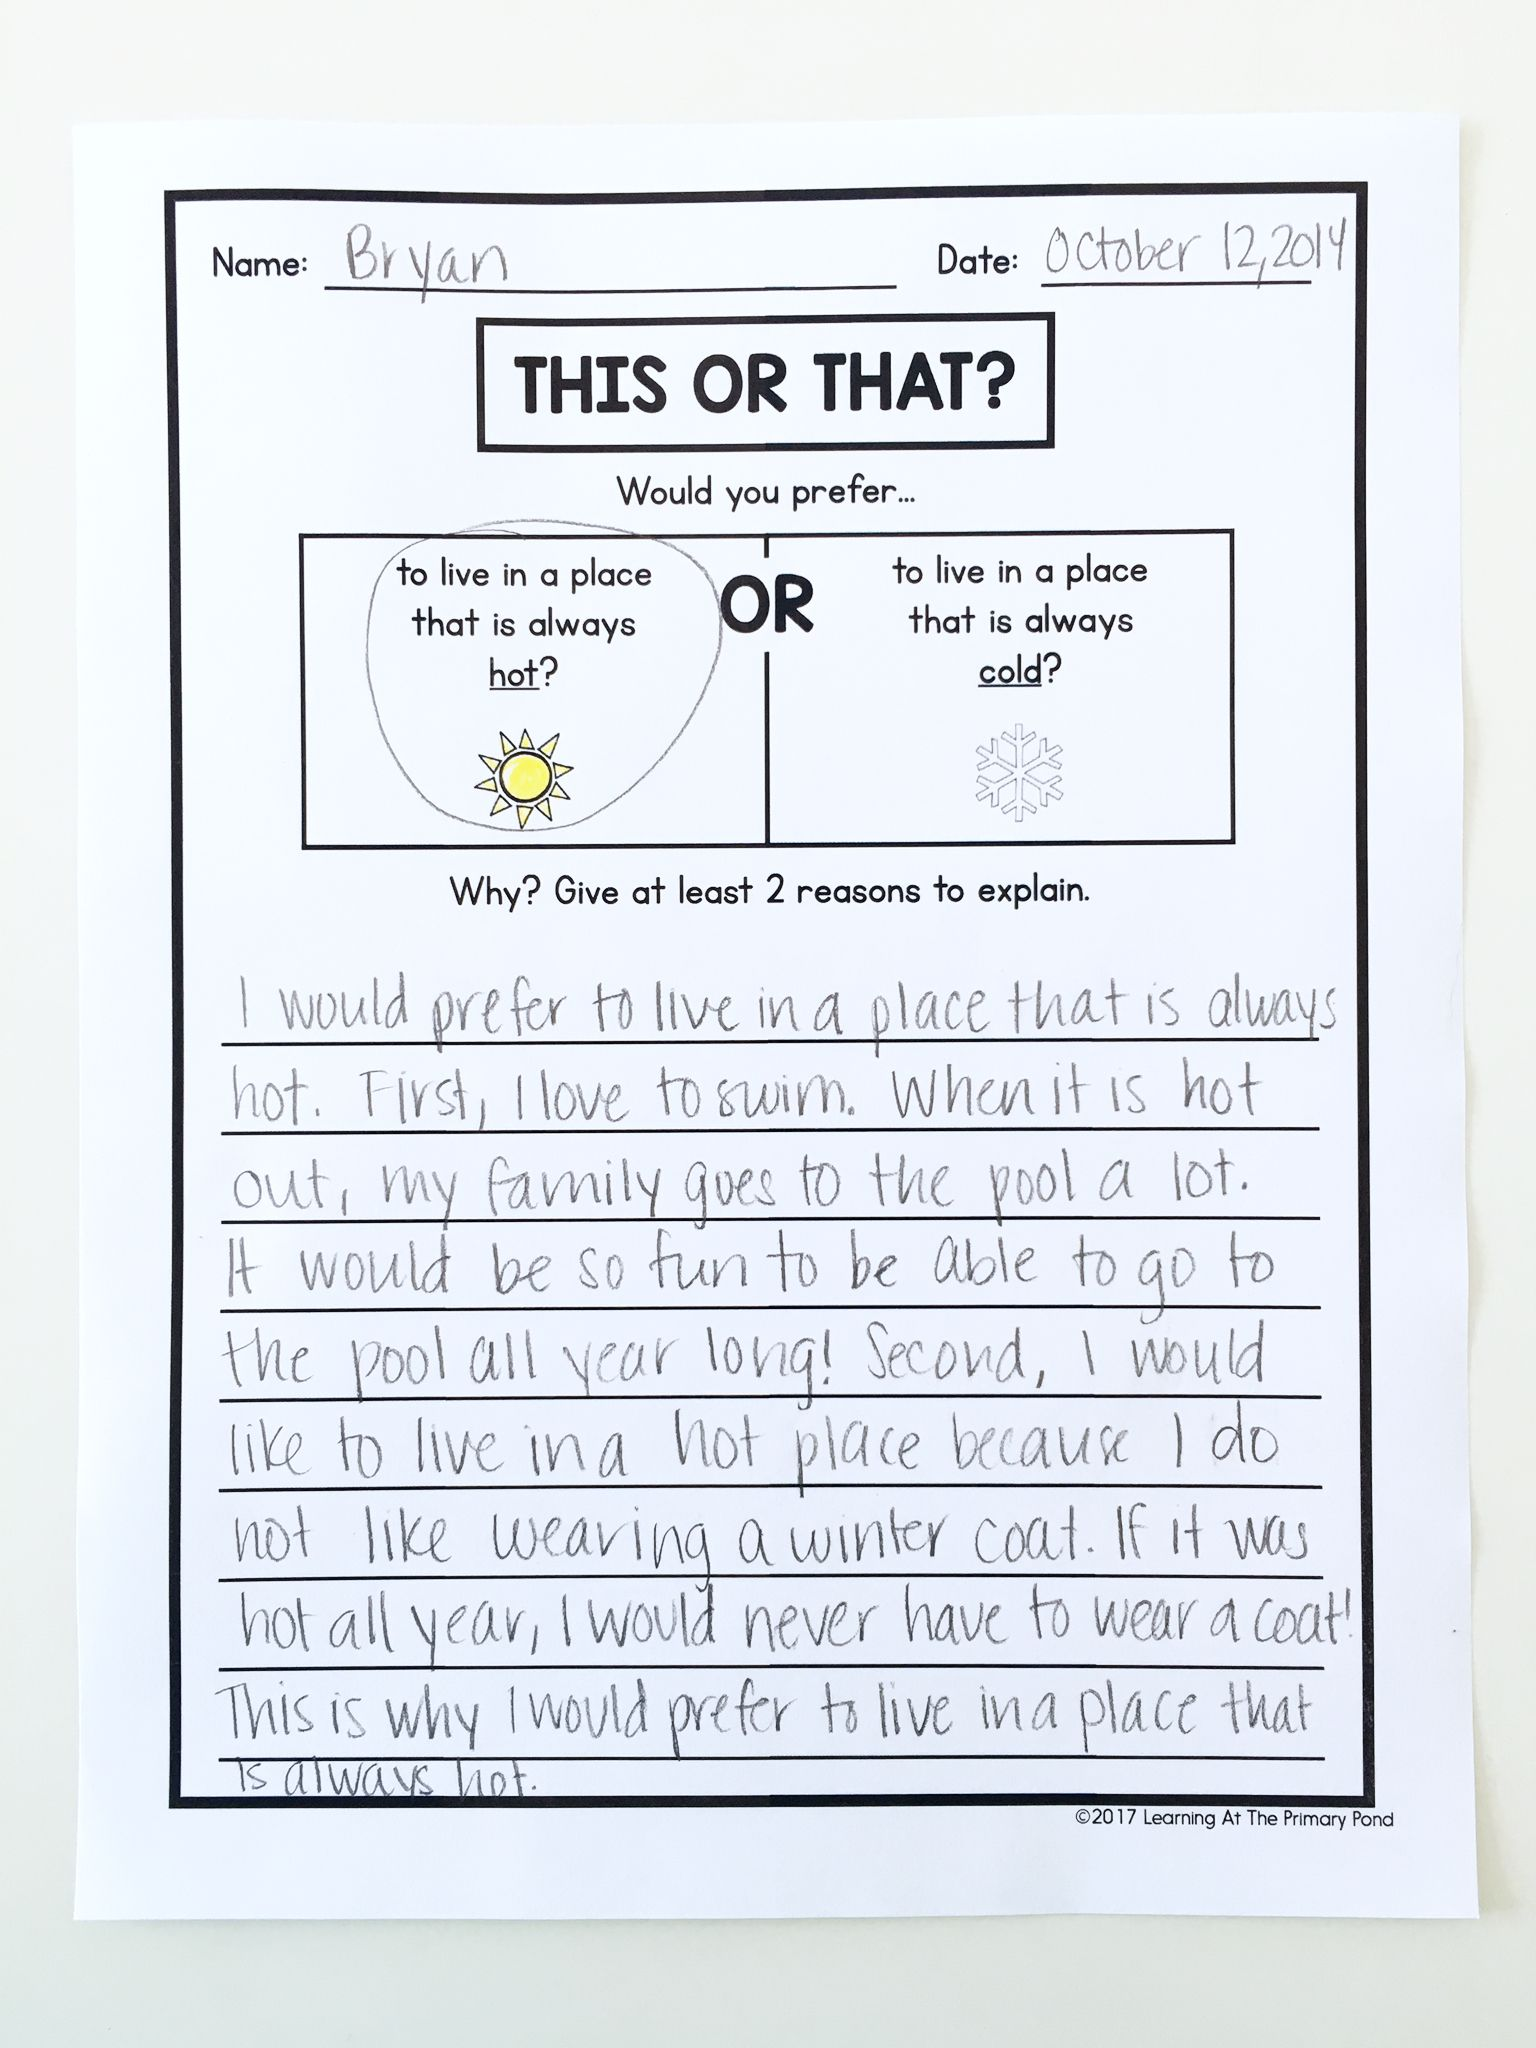 Opinion writing activity for second grade - kids choose between two options  and explain their pre…   Writing center [ 2048 x 1536 Pixel ]